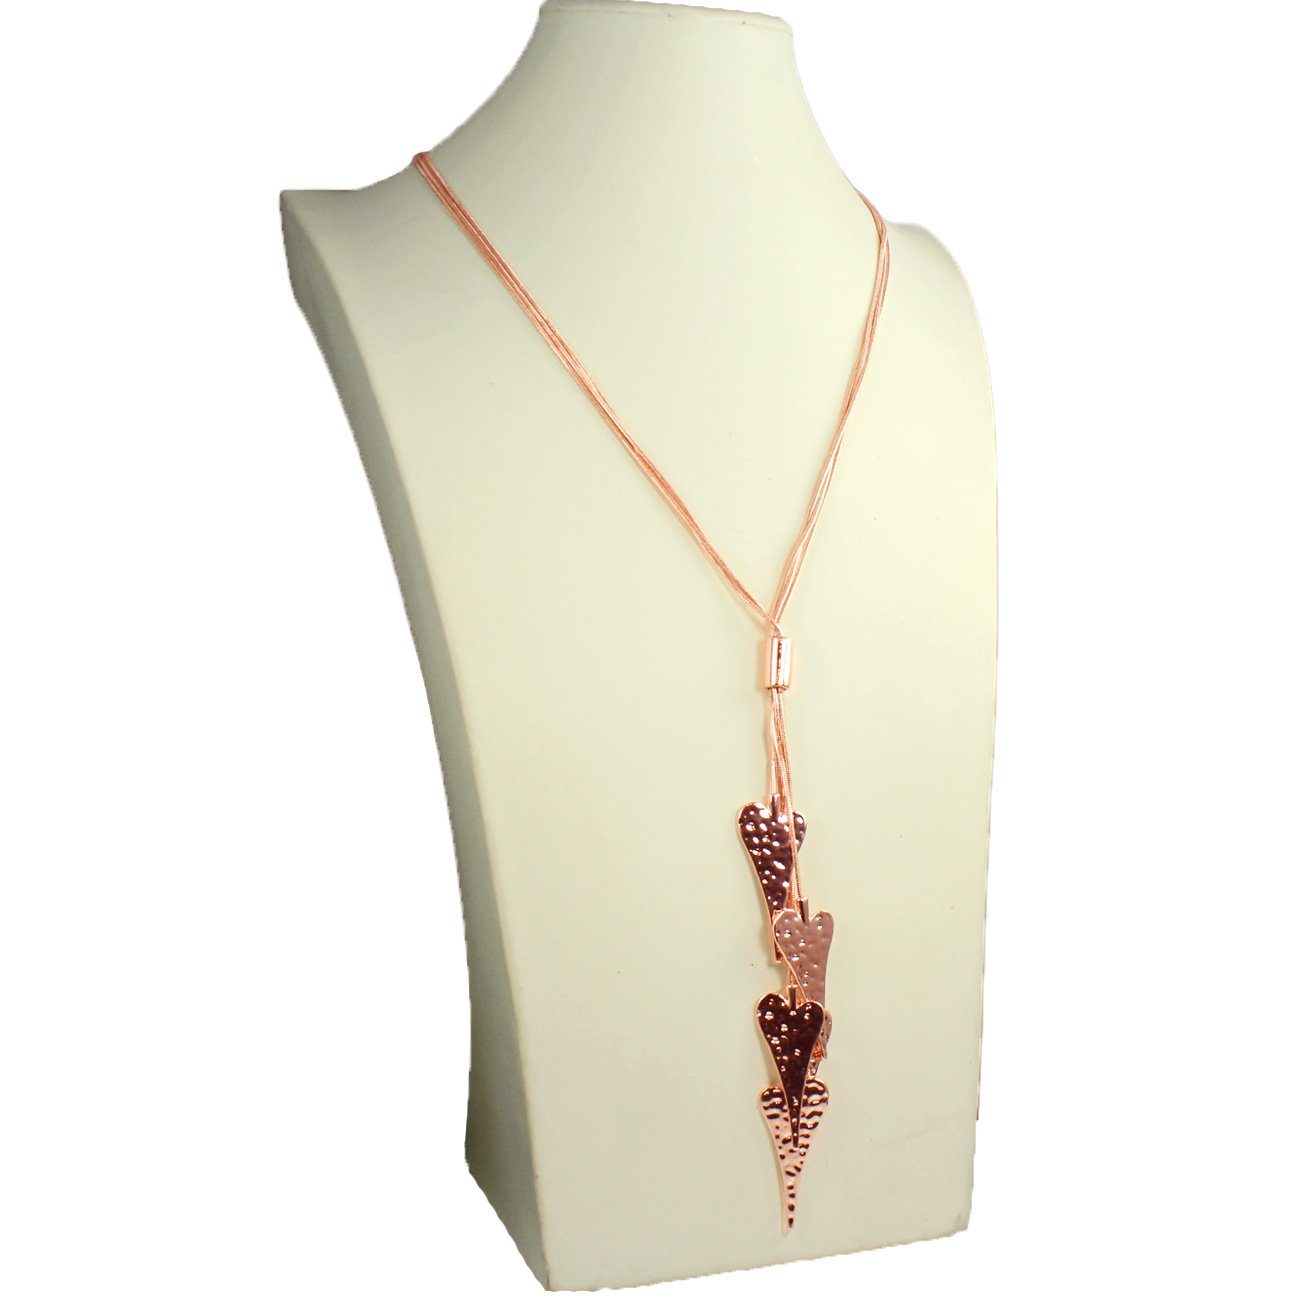 Lagenlook rose gold plated hammered finish dangling 5 heart charm long necklace